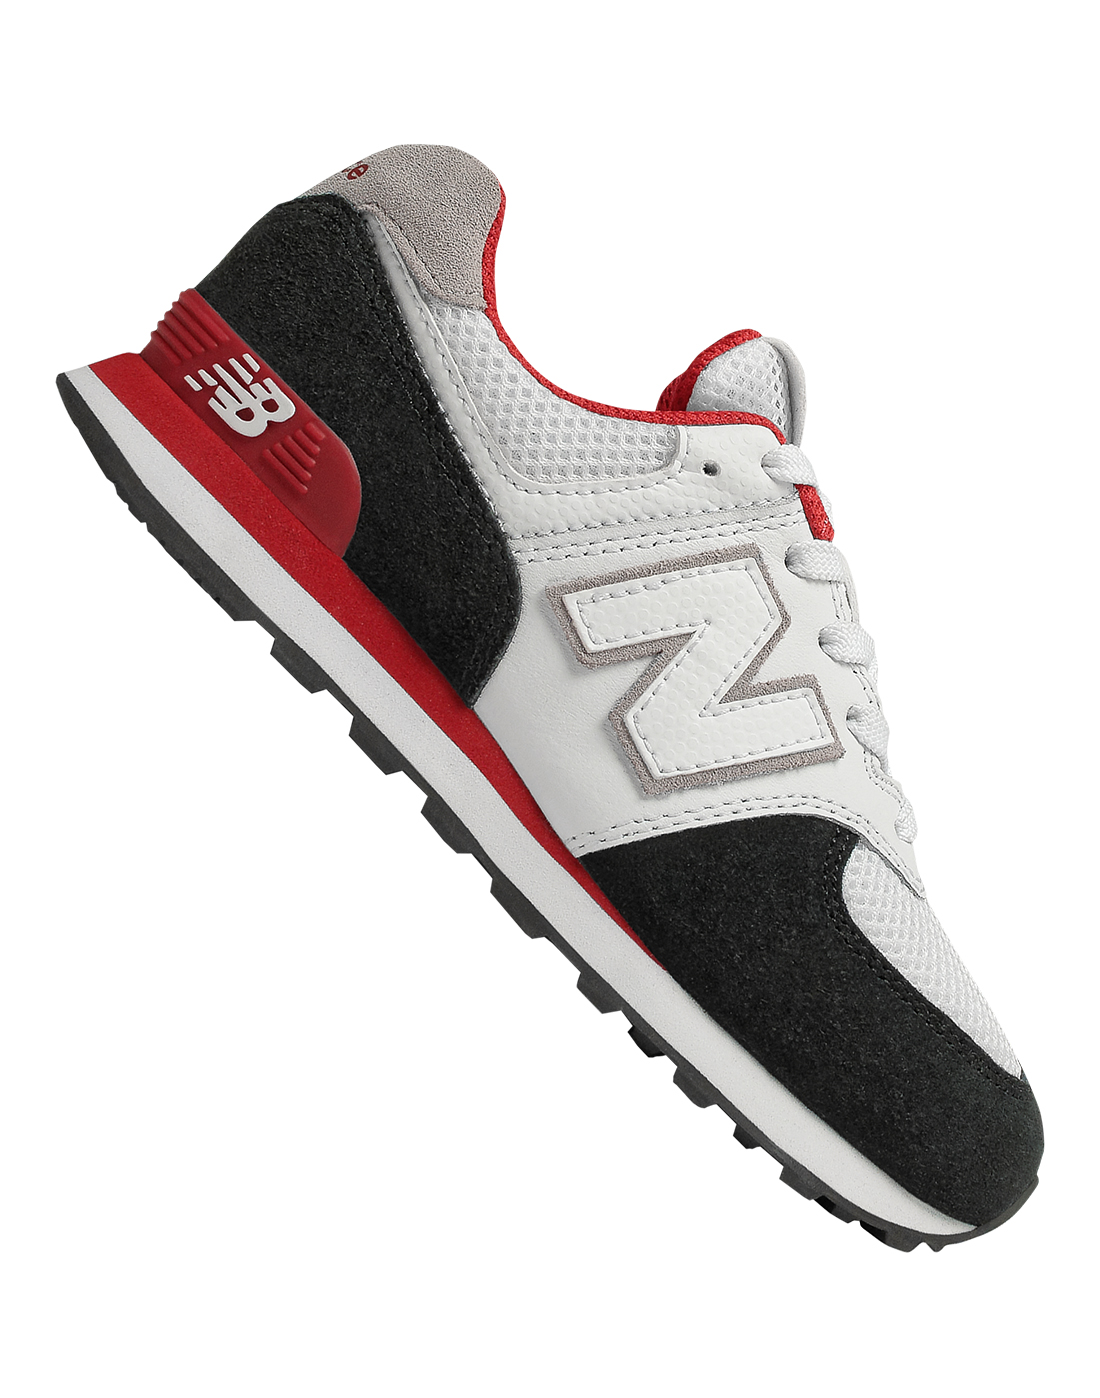 658367763 Girl's Black, White & Red New Balance 574 Trainers | Life Style Sports